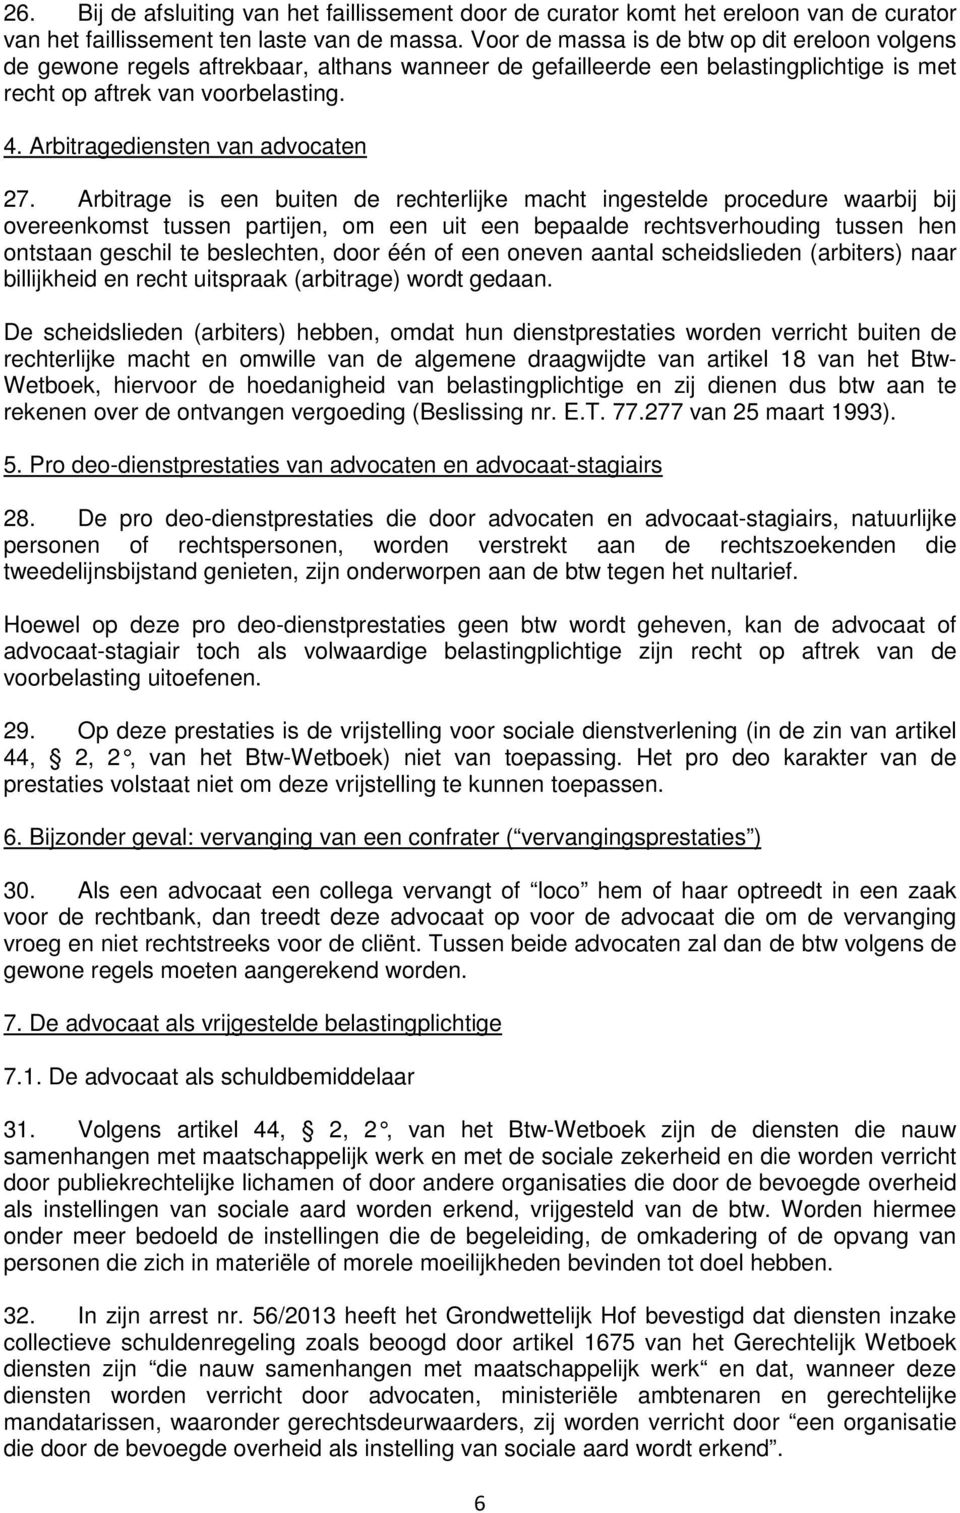 Arbitragediensten van advocaten 27.